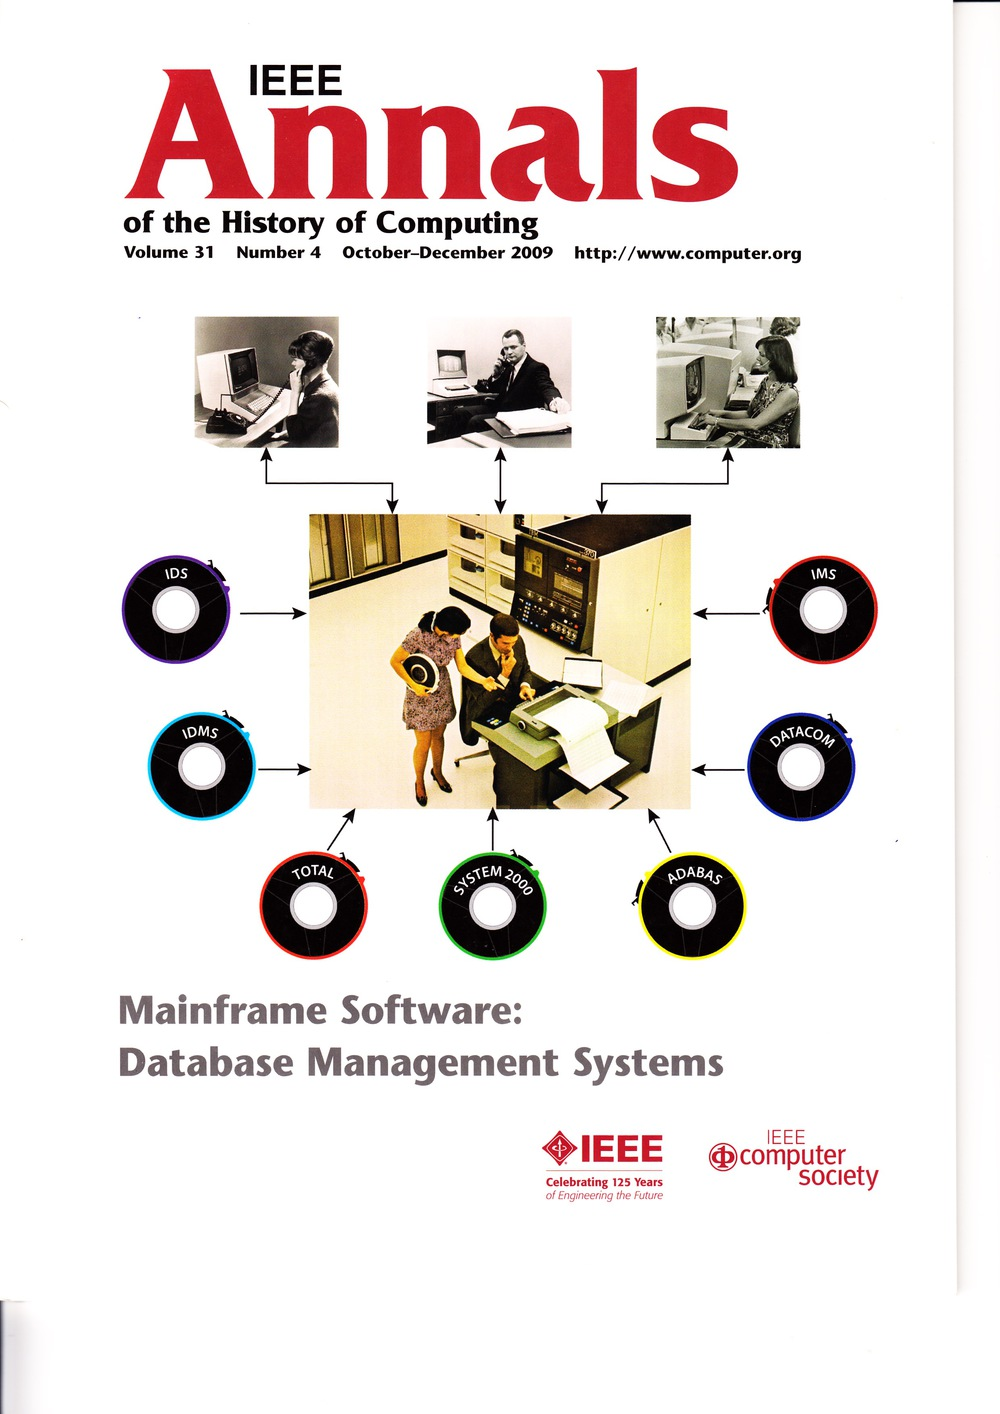 Scan of Document: IEEE Annals of the History of Computing - October-December 2009